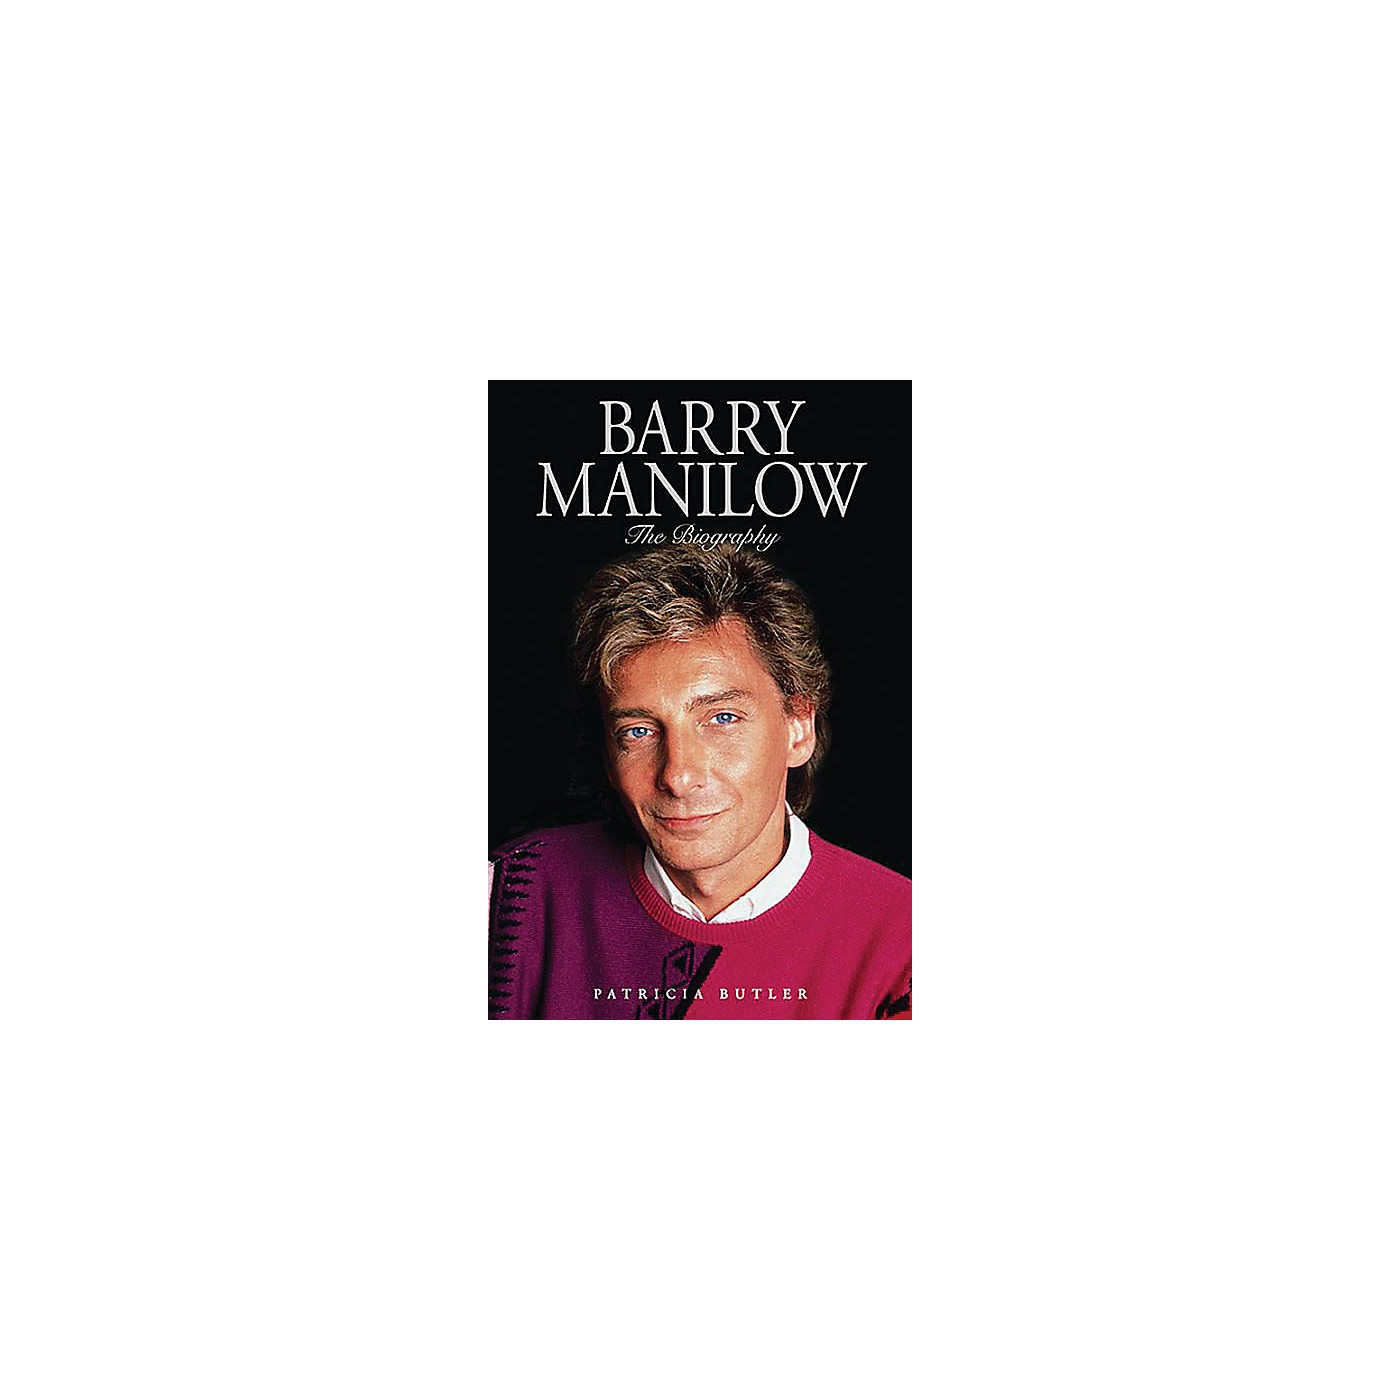 Omnibus Barry Manilow (The Biography) Omnibus Press Series Softcover thumbnail